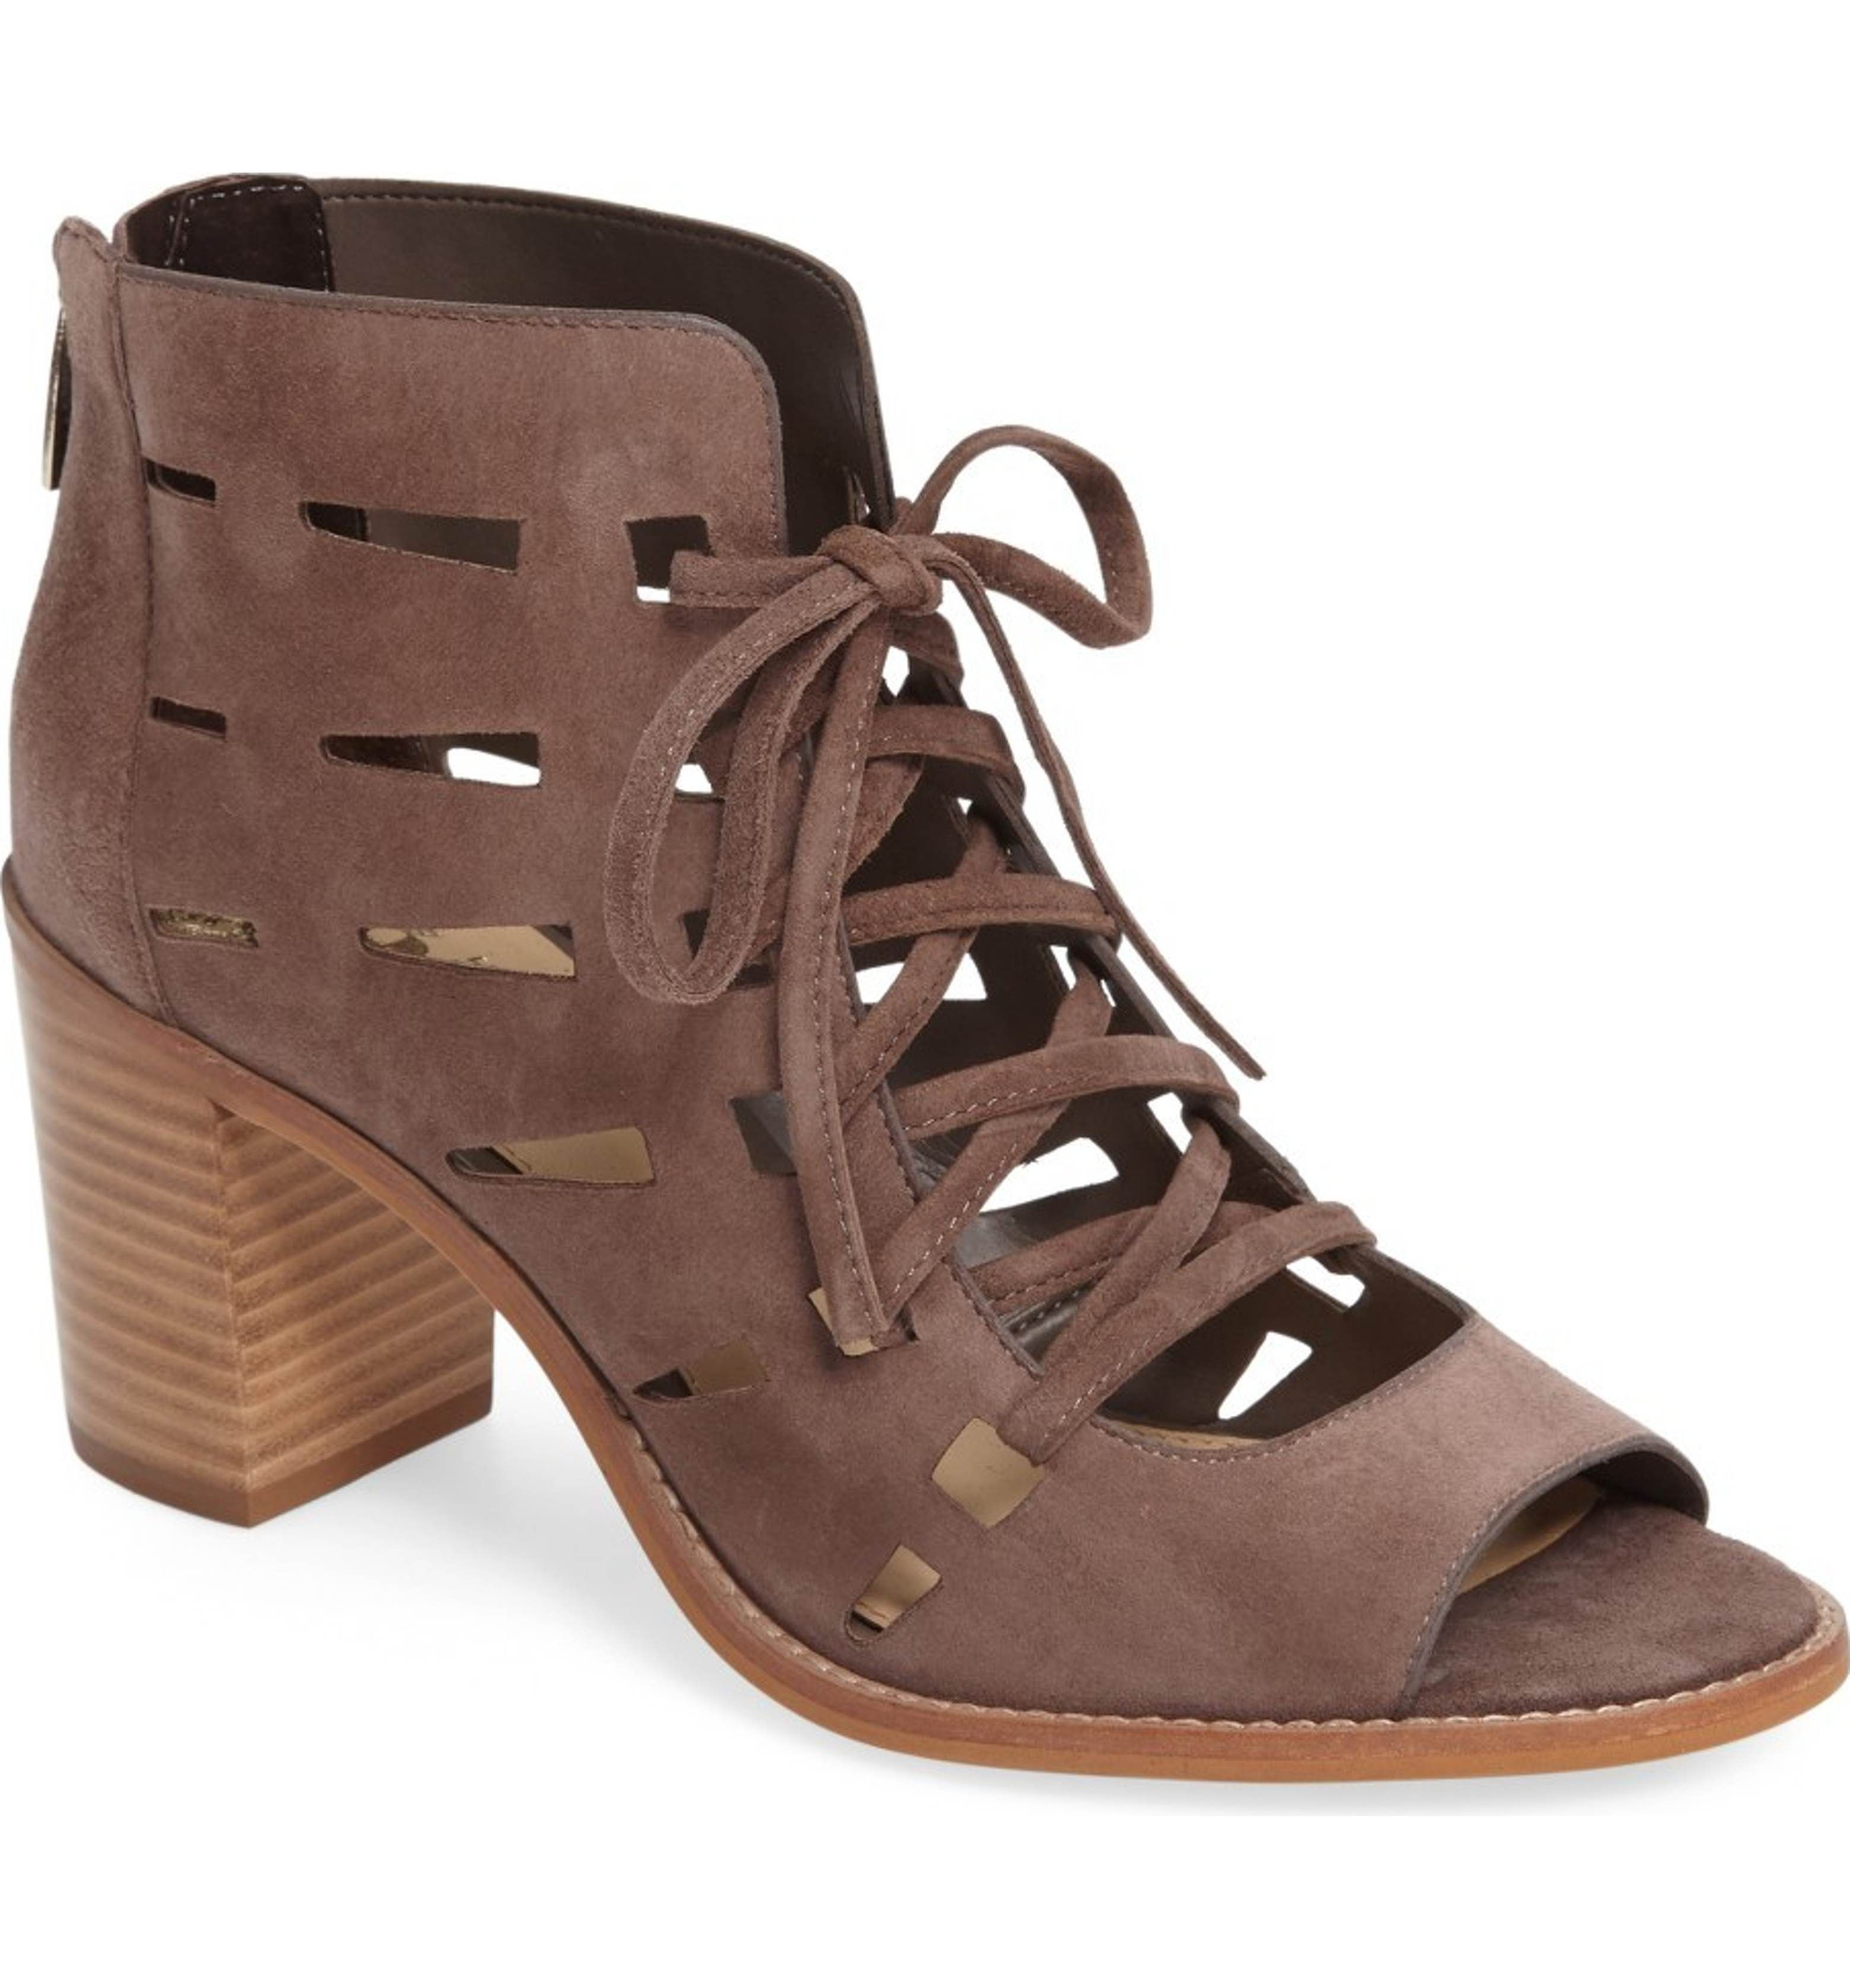 Women's sandals for wide feet